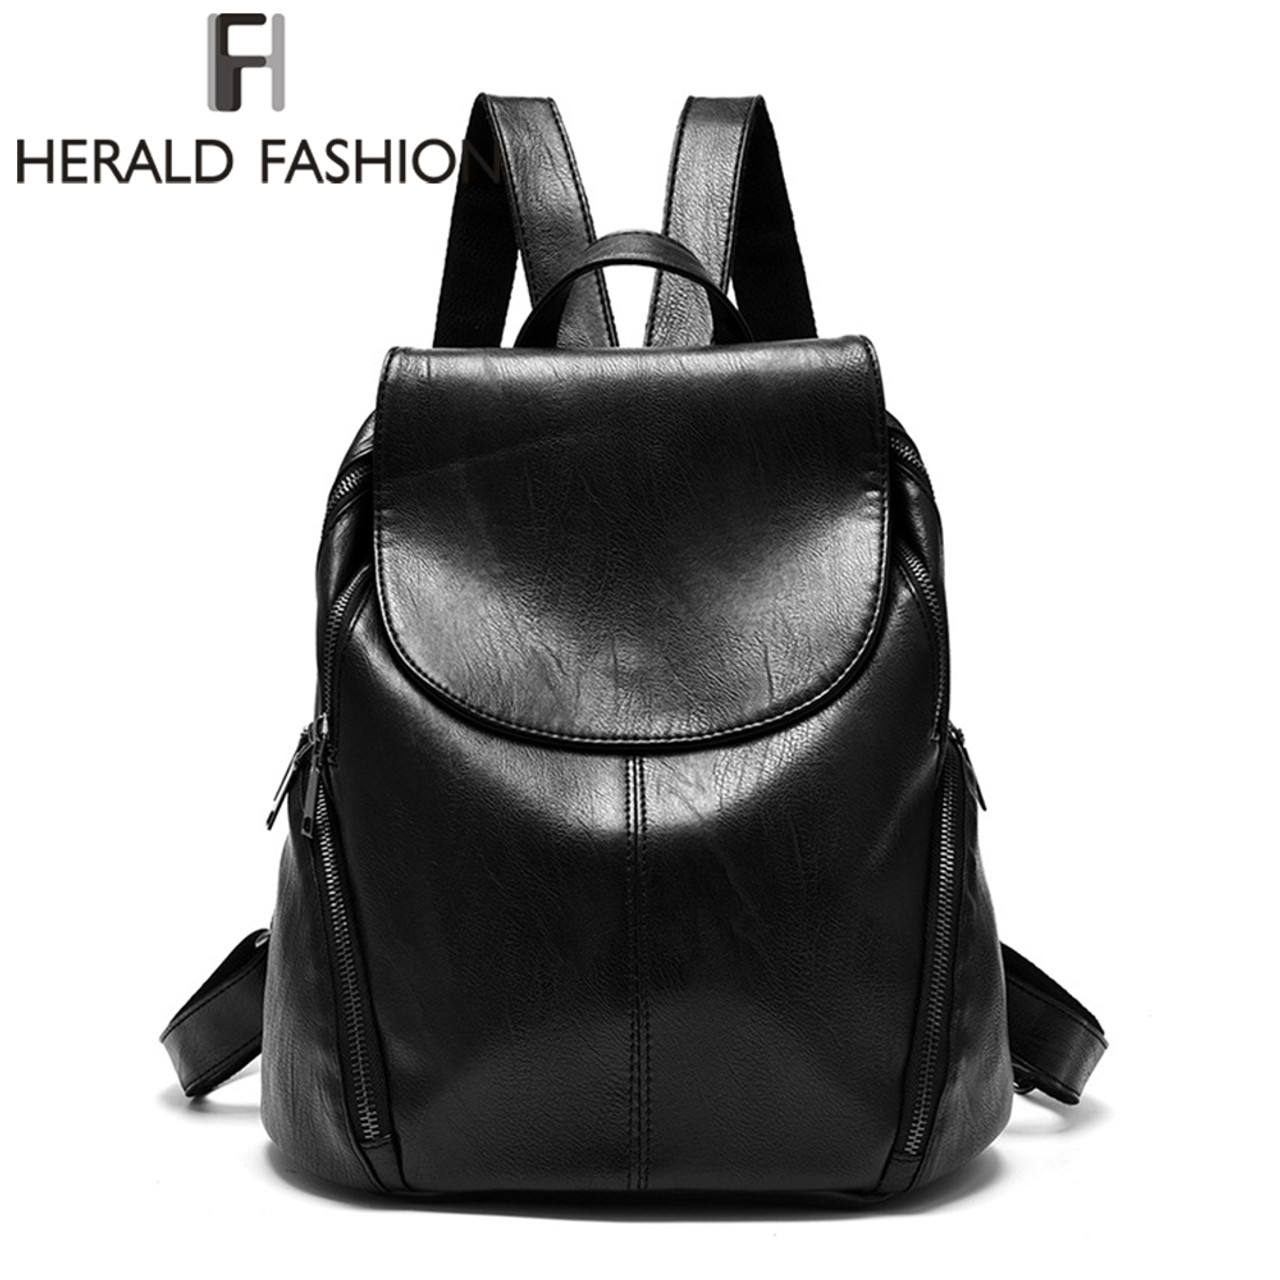 75a9ea3492 Herald Fashion Backpacks for Teenage Girls Women s PU Leather Backpack  School Bag Casual Vintage Large Capacity ...